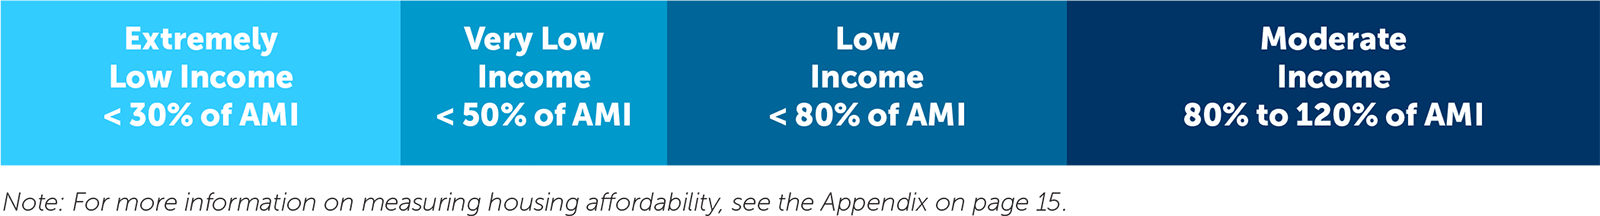 Extremely Low Income < 30% of AMI Very Low Income < 50% of AMI Low Income < 80% of AMI 80% of AMI < Moderate Income < 120% of AMI